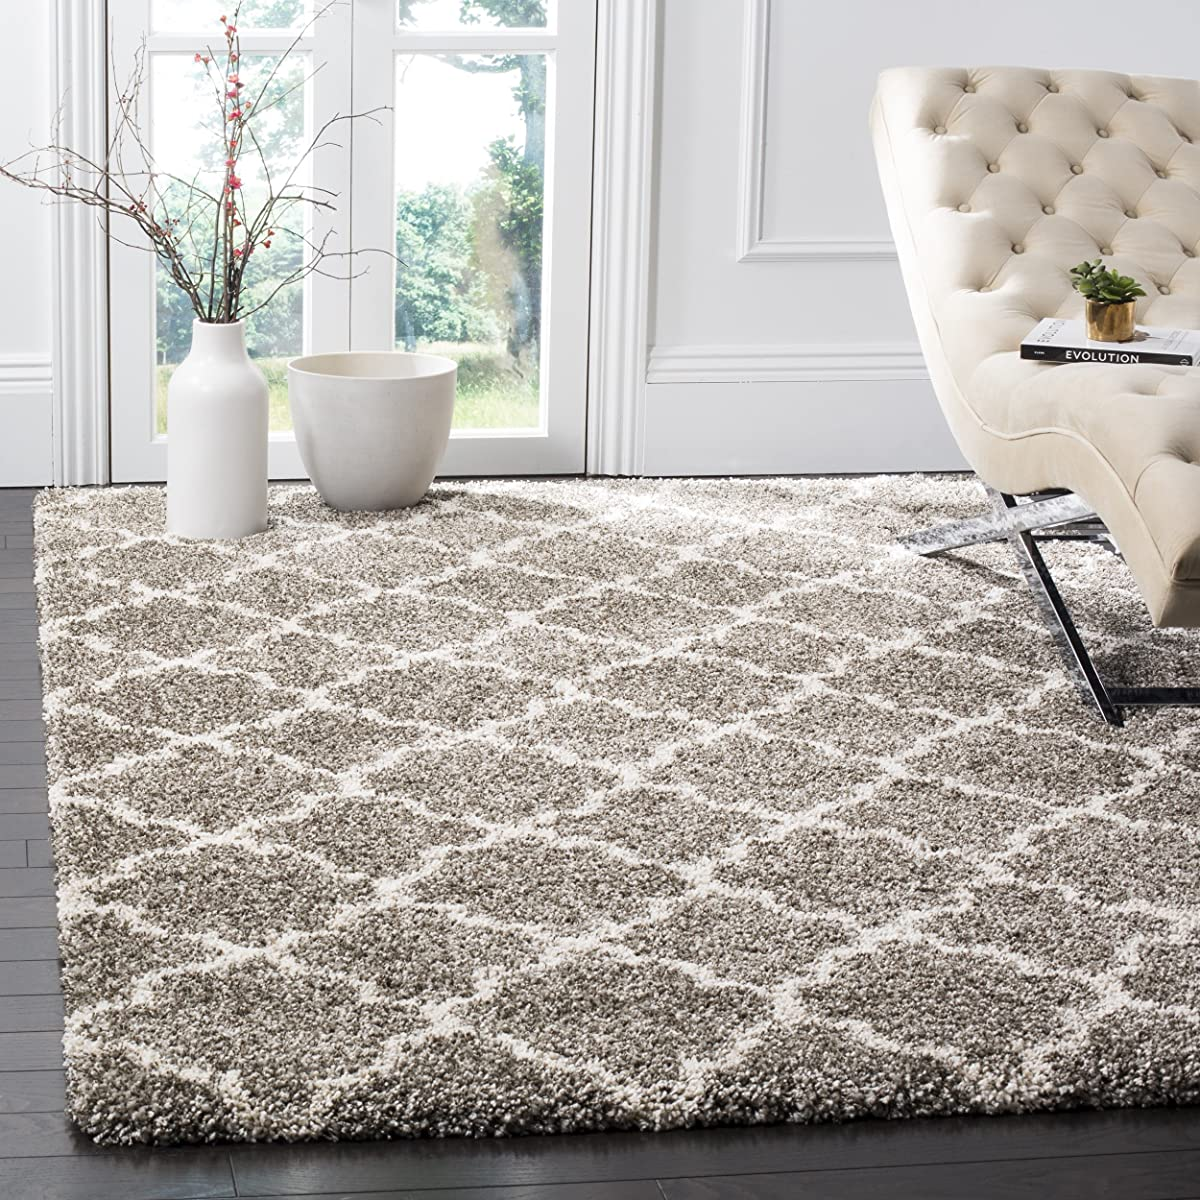 Safavieh Hudson Shag Collection Sgh282b Grey And Ivory